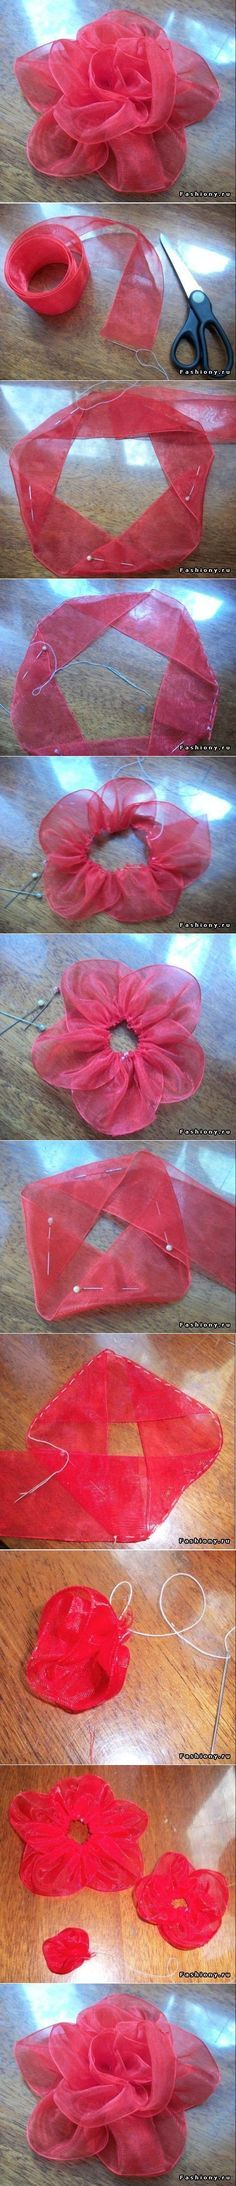 Ribbon Rose Illustrated Tutorial: fold angles, pin, stitch perimeters, layer | I would heat seal the raw edges of the organdy ribbon to prevent fraying  sew a bling  onto the flower center